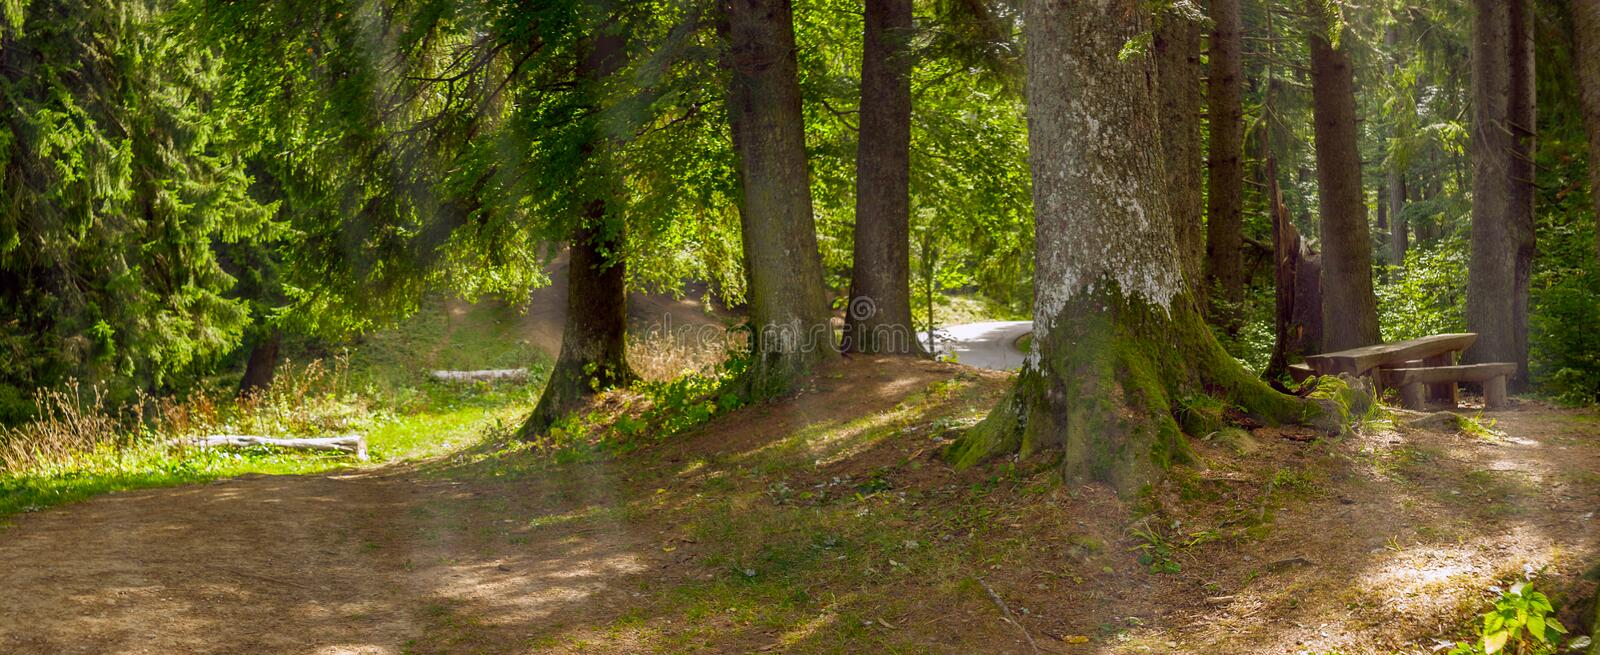 Sunbeams passing through fir and cedar trees in a forest. A bench and a wooden table seen on the left. Panorama royalty free stock photo